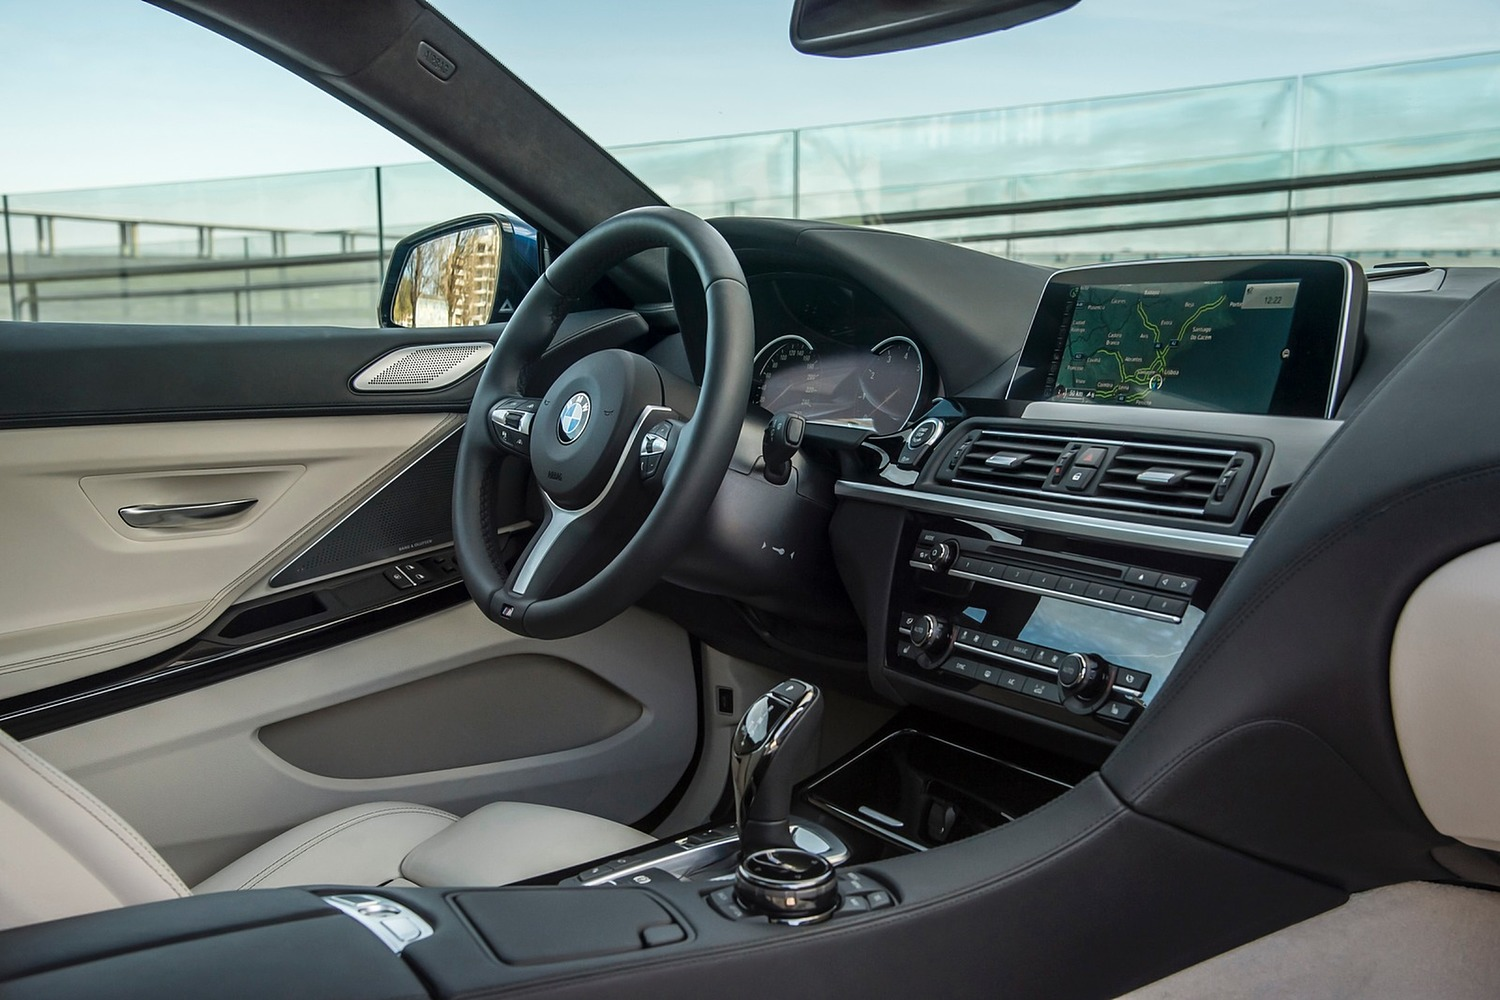 BMW 6 Series 650i Coupe Interior 2015 Model Year Shown